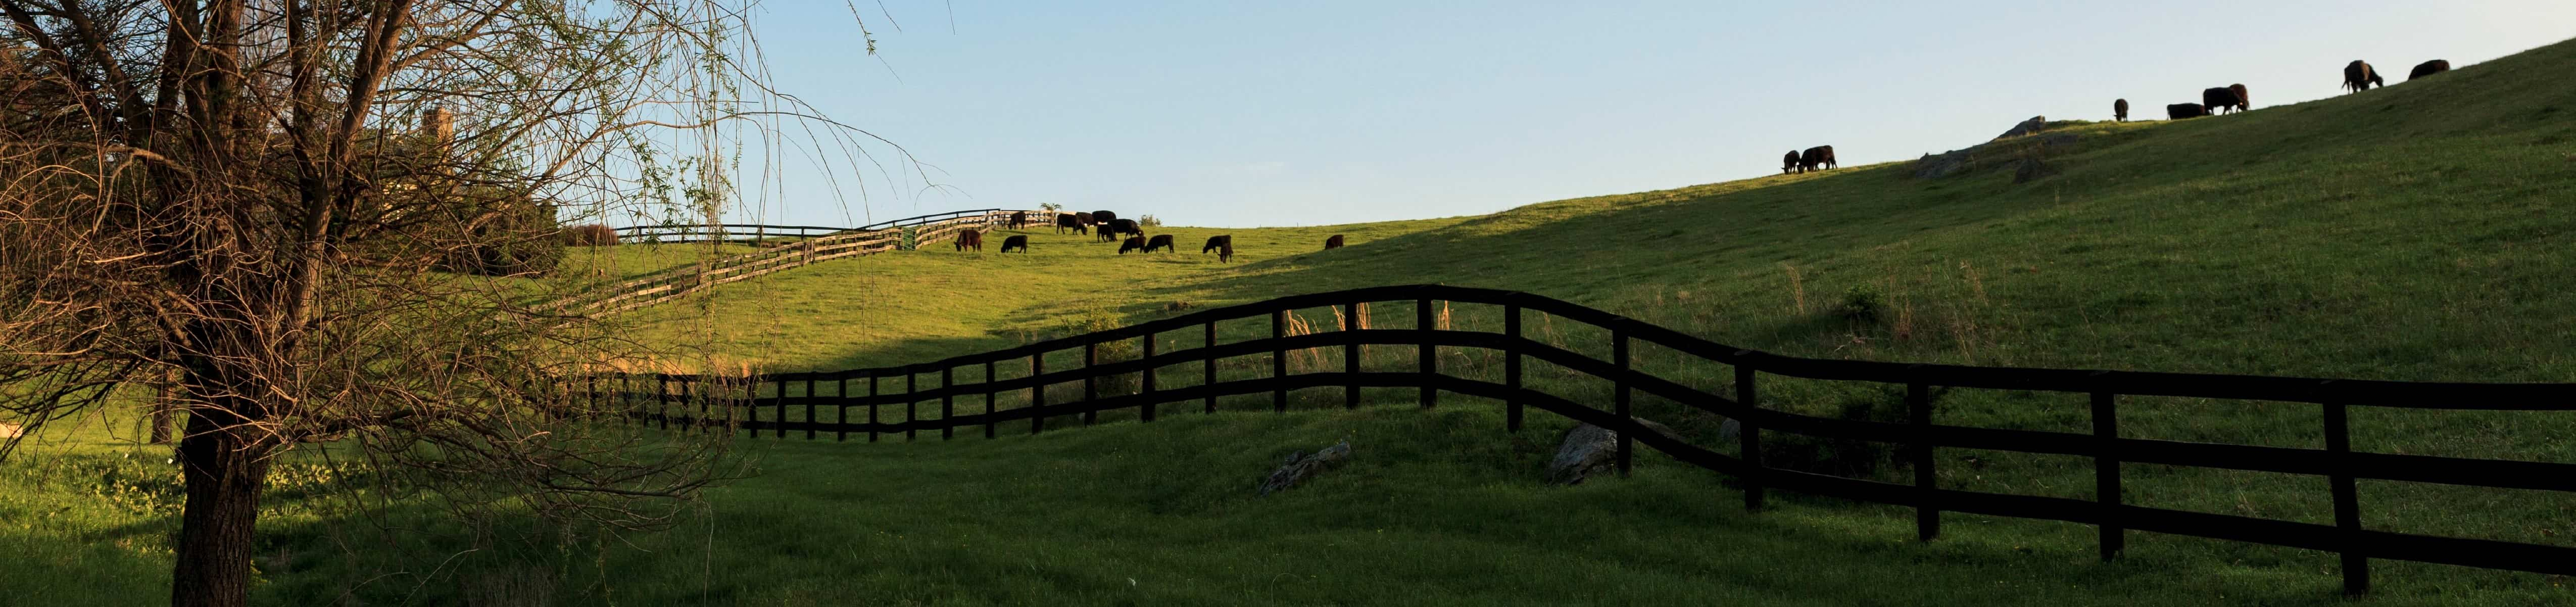 Cattle grazing in Virginia (Photo: Jumping Rocks/UIG via Getty Images)